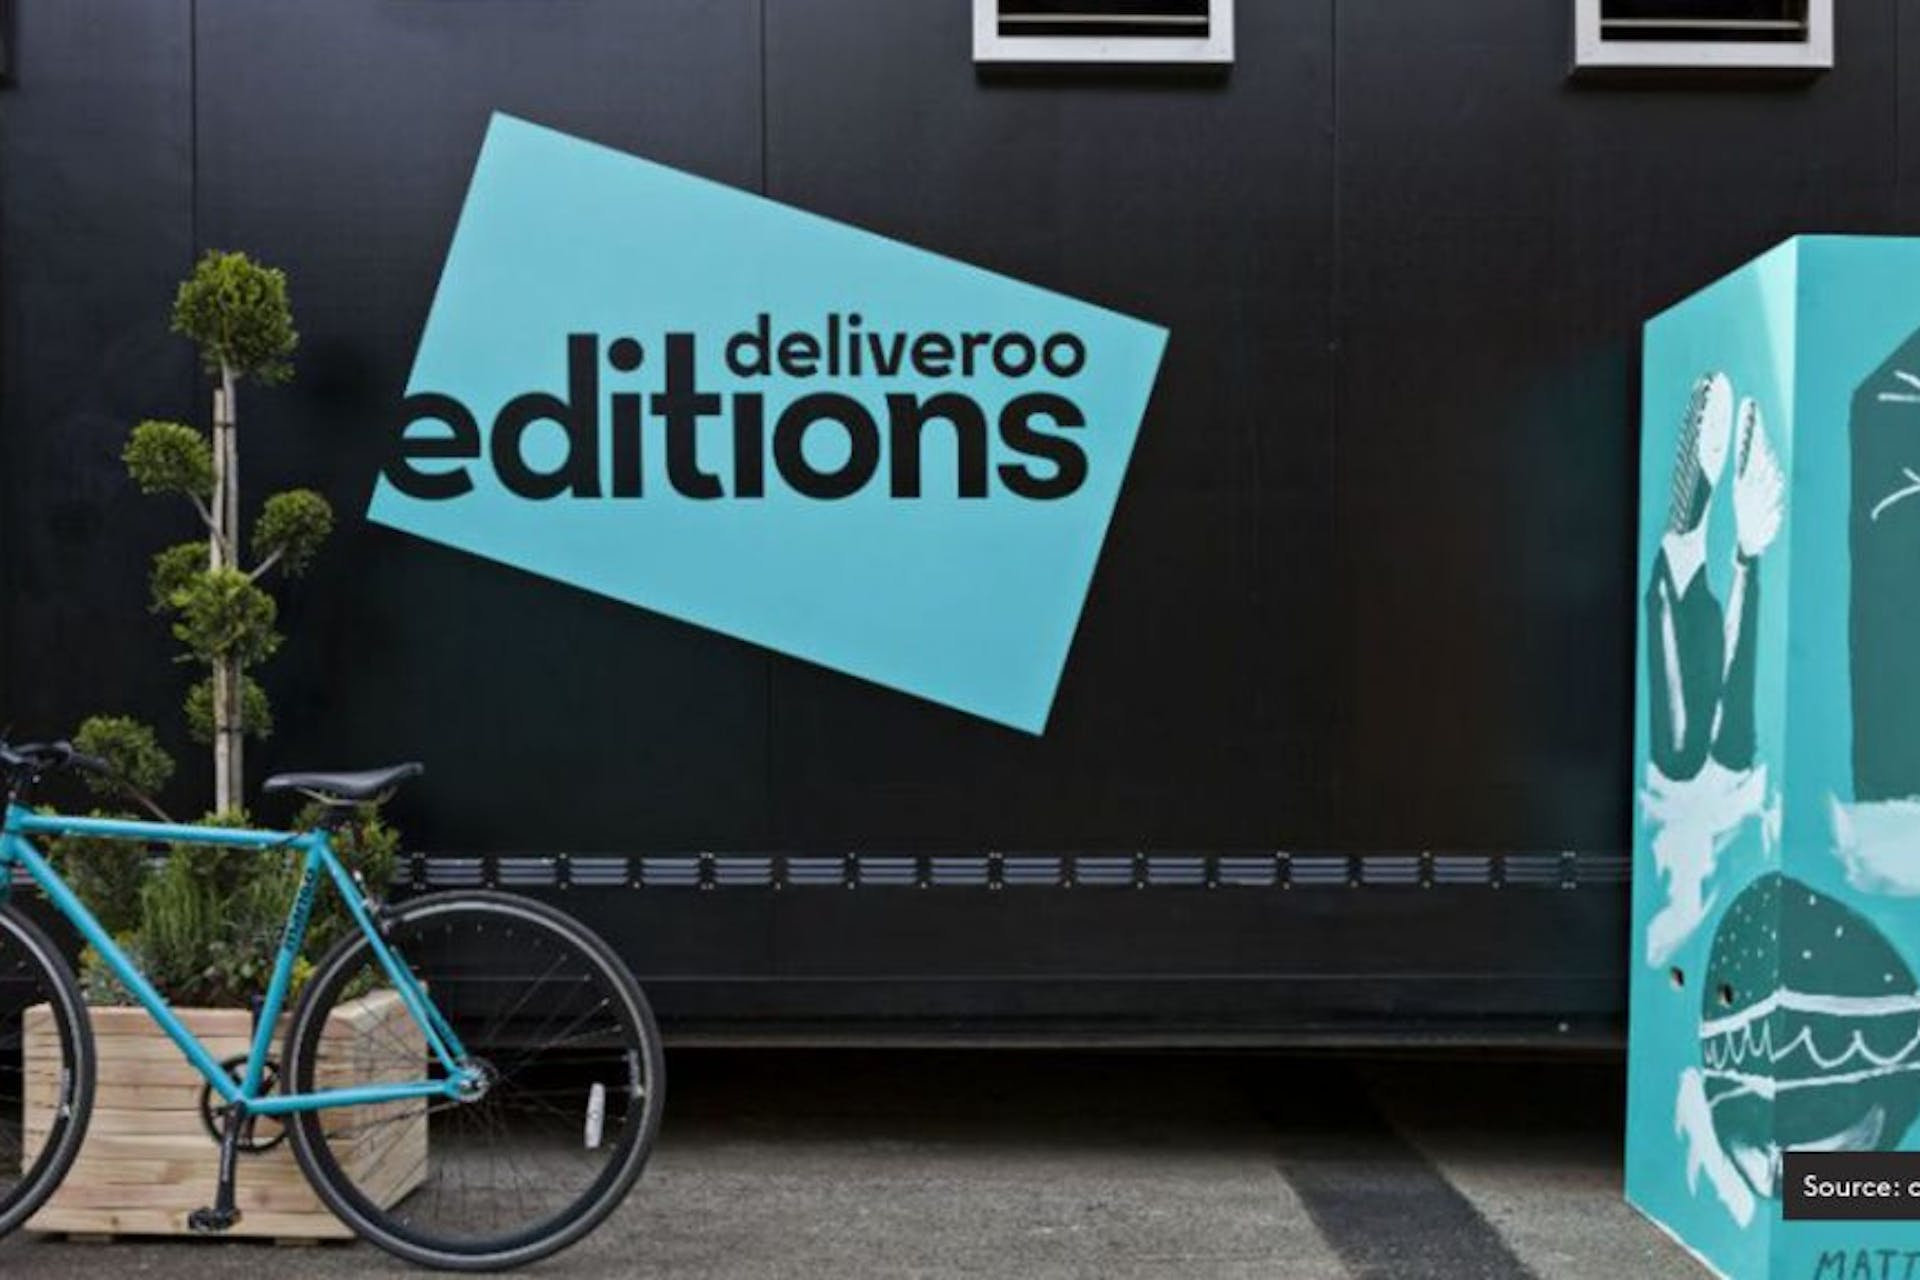 Deliveroo remains ahead of the competition by investing in resources that give it a competitive edge. However, the crux of the company's success lies in its quick responses to customer concerns and demands, thanks to its data-driven decision-making processes.